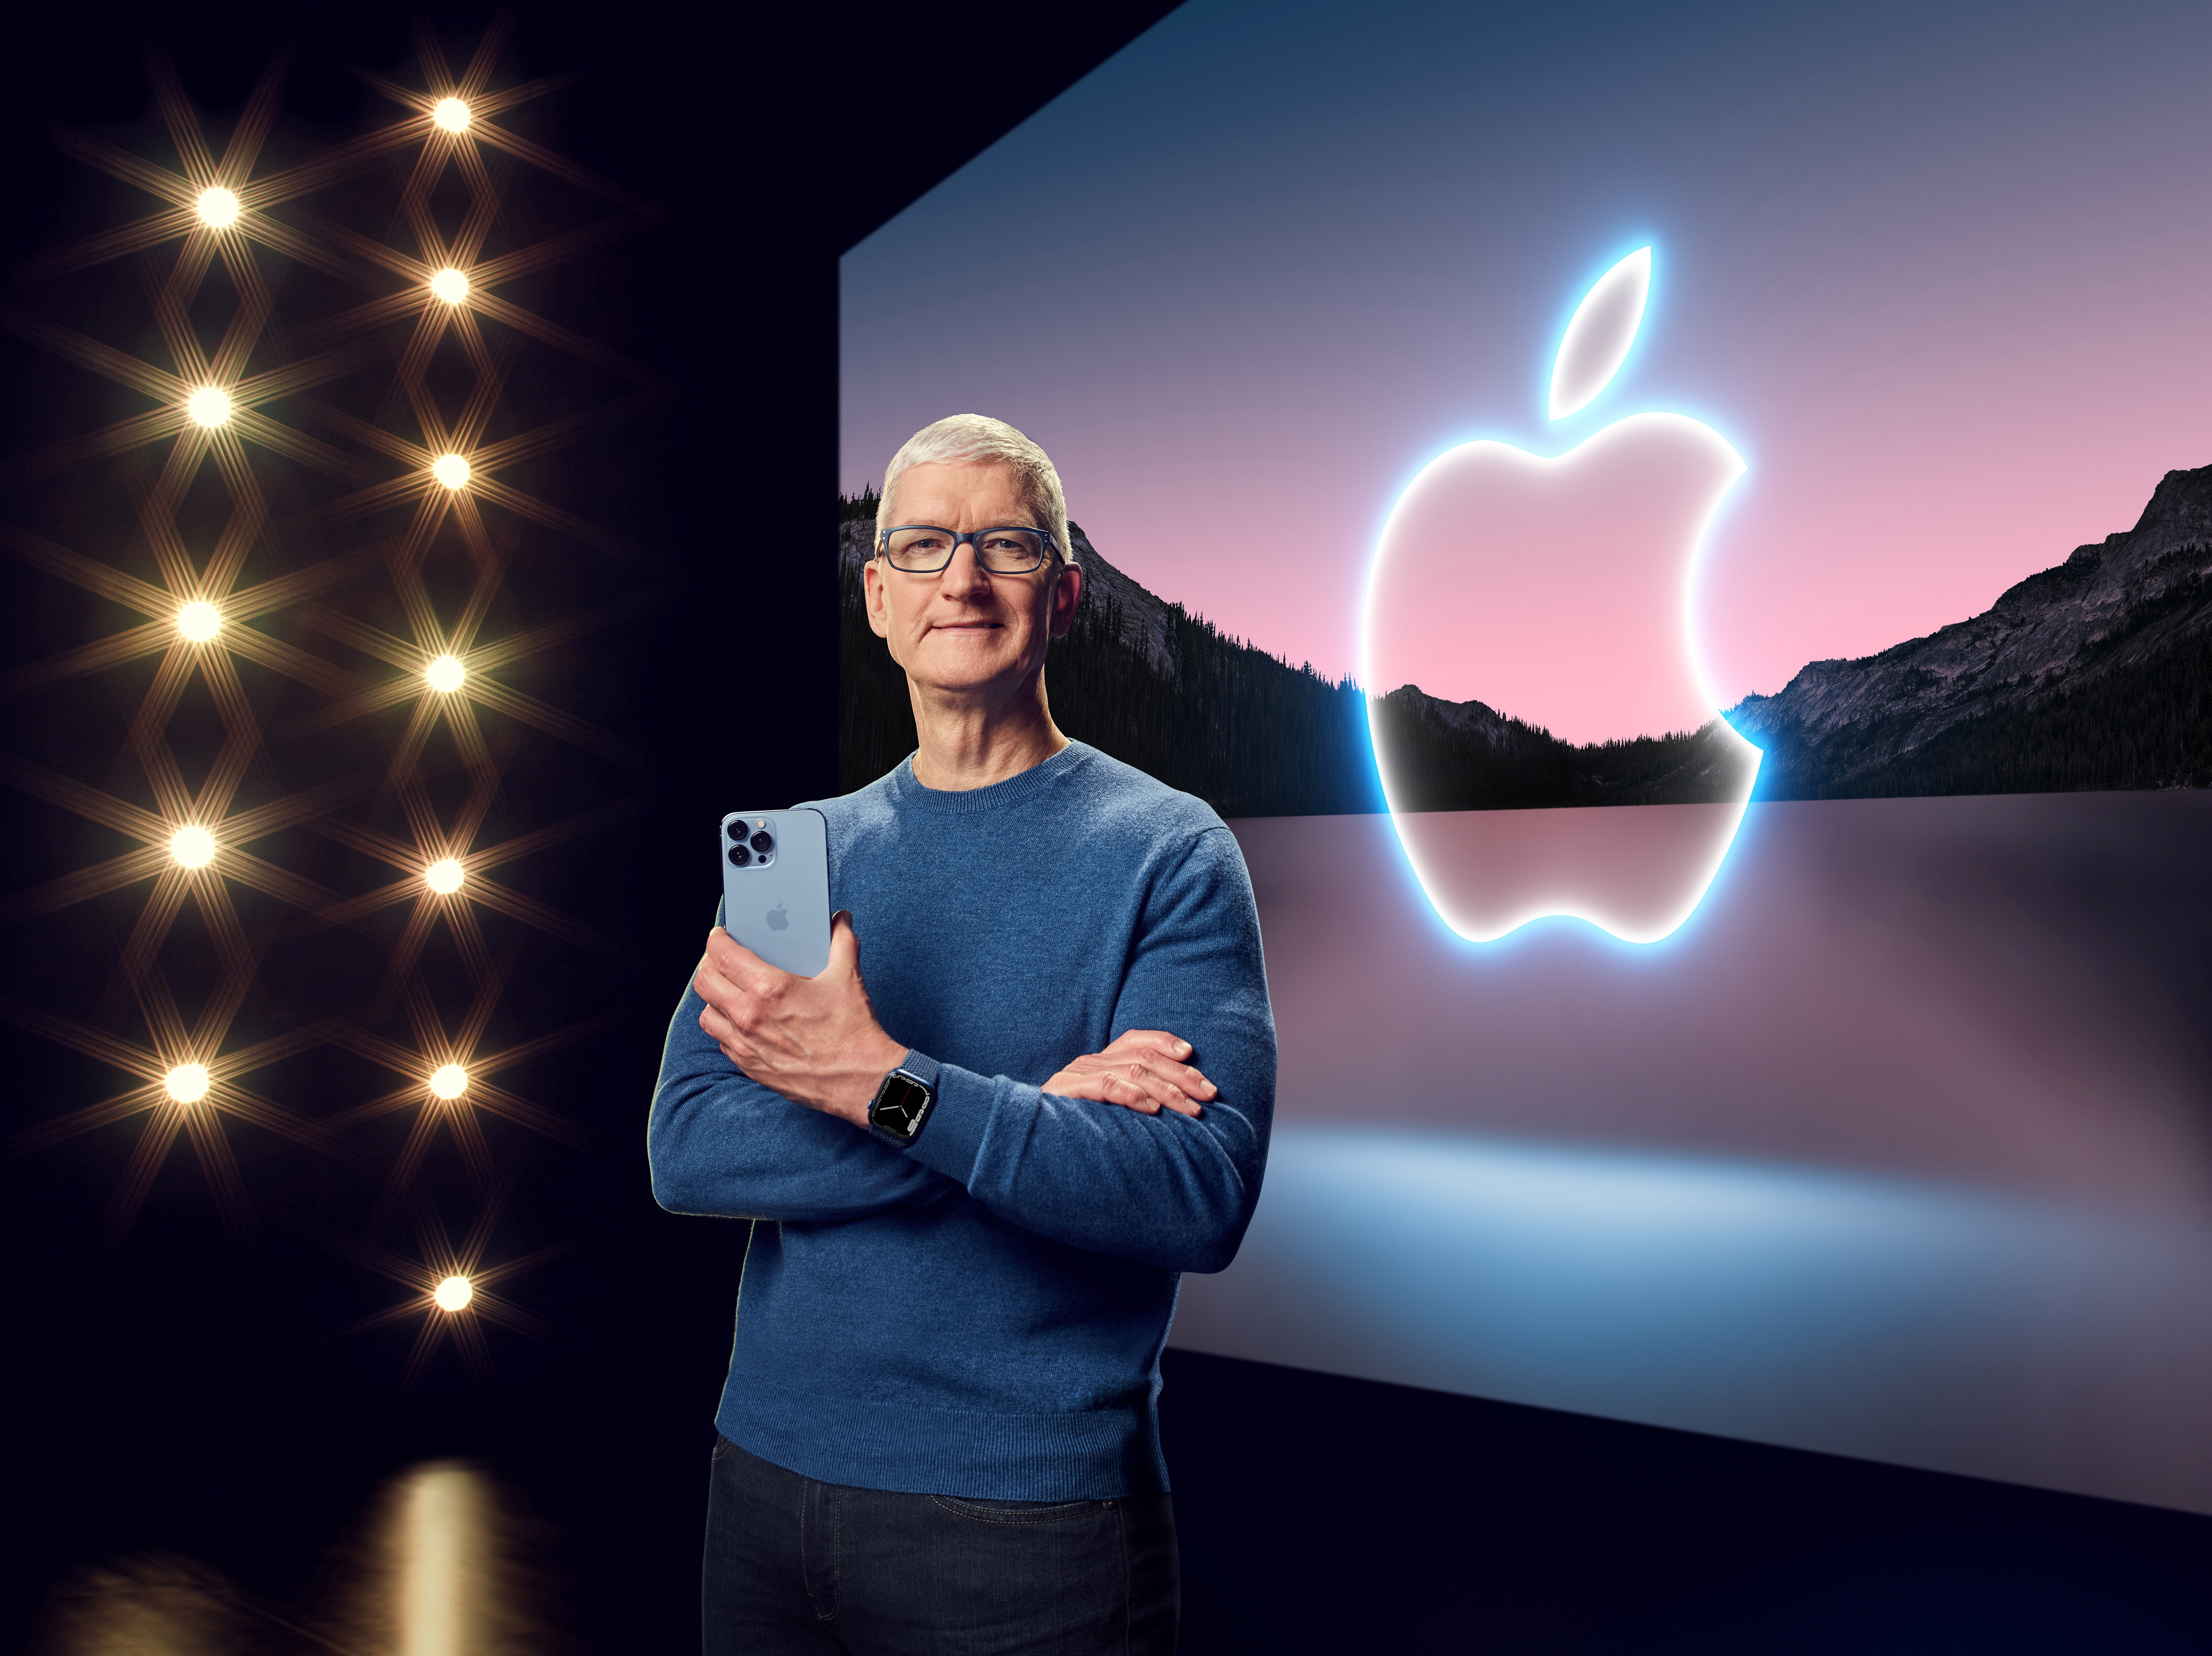 Apple CEO Tim Cook holds the iPhone 13 Pro Max and Apple Watch Series 7 during a special event at Apple Park in Cupertino, California broadcast September 14, 2021.  Apple Inc/Handout via REUTERS